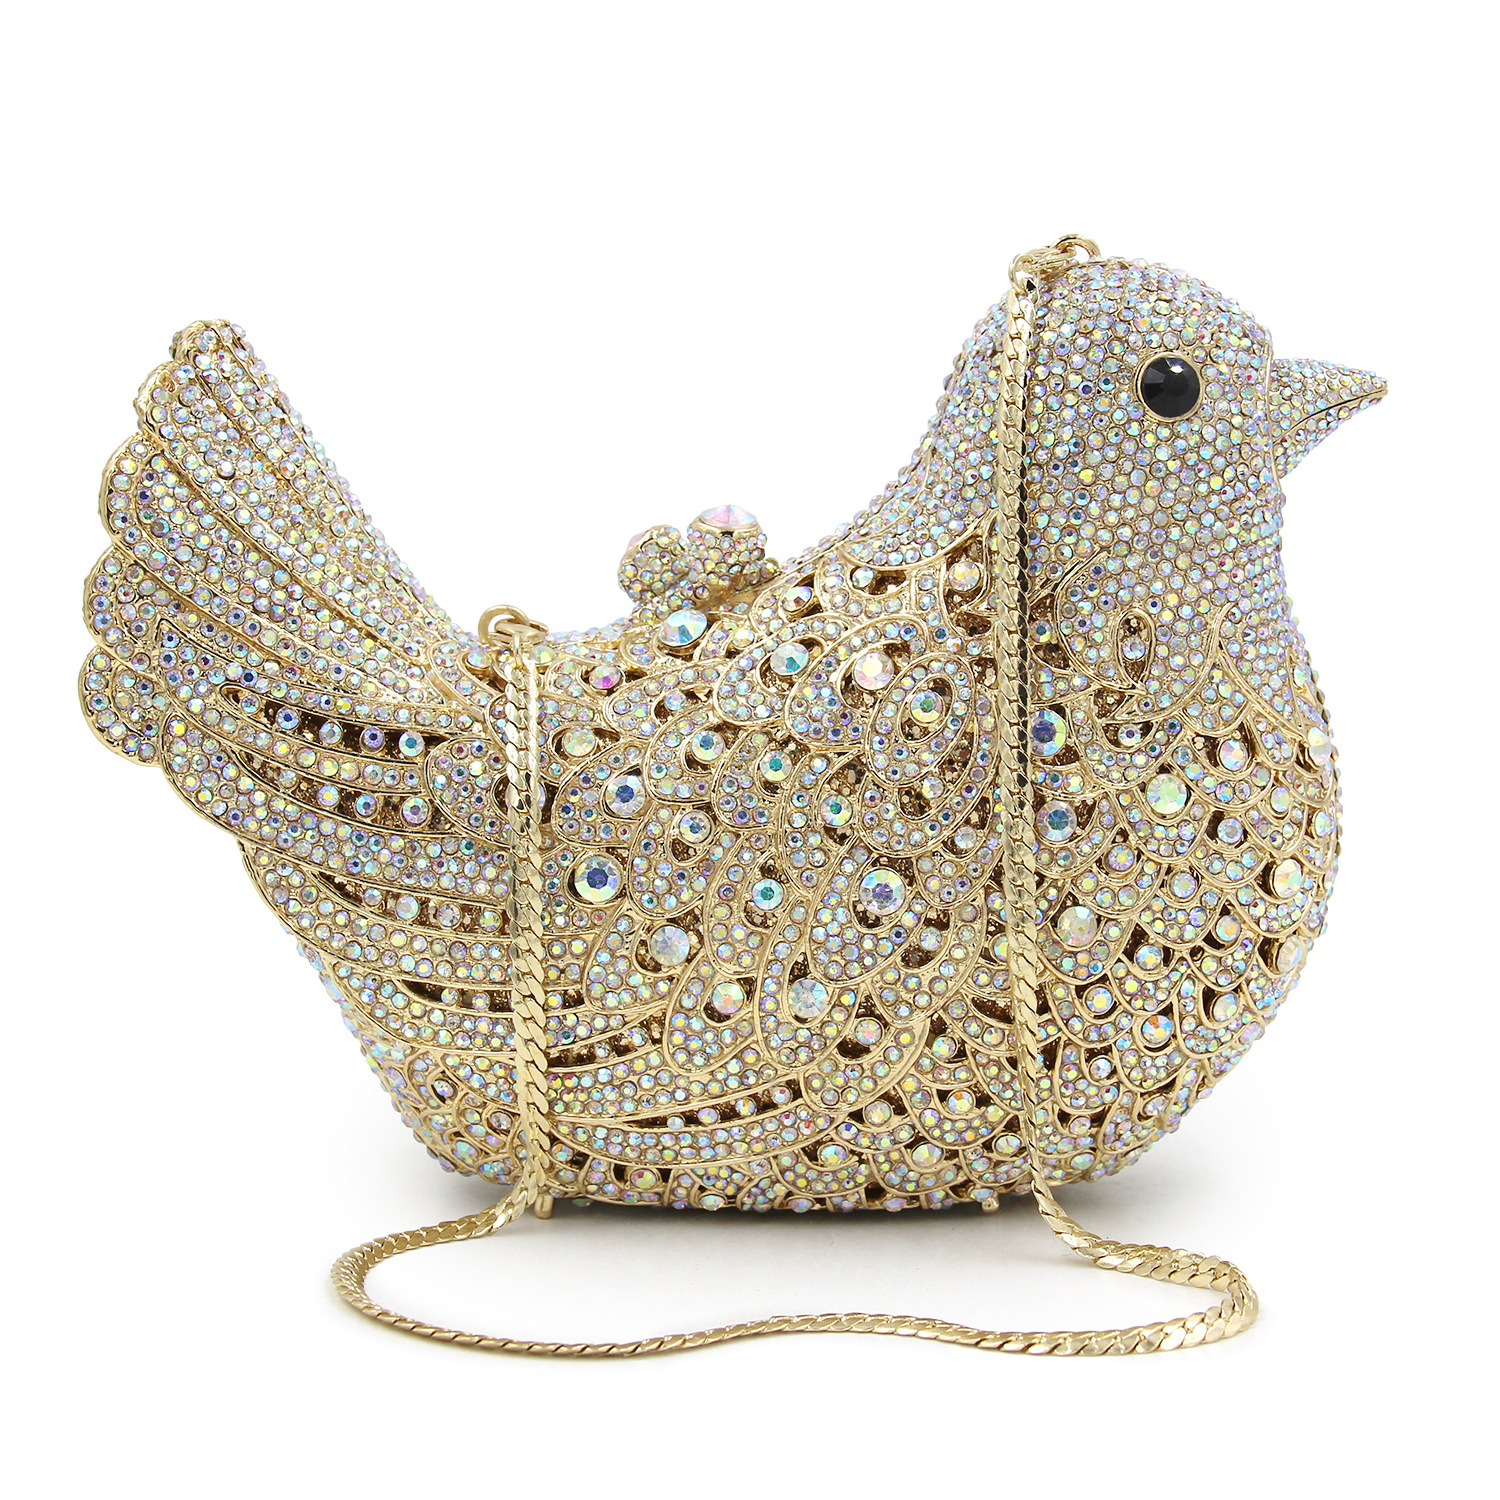 Hot Sale Luxury Diamond Bird Bag Women Crystal Animal Evening Clutch Hand Bag For Party Purse Woman Chain Handbags Mini Baobao luxury crystal clutch bags uk hot sale pillow shaped white pearl clutch handbags for cheap women crystal evening bag with chain